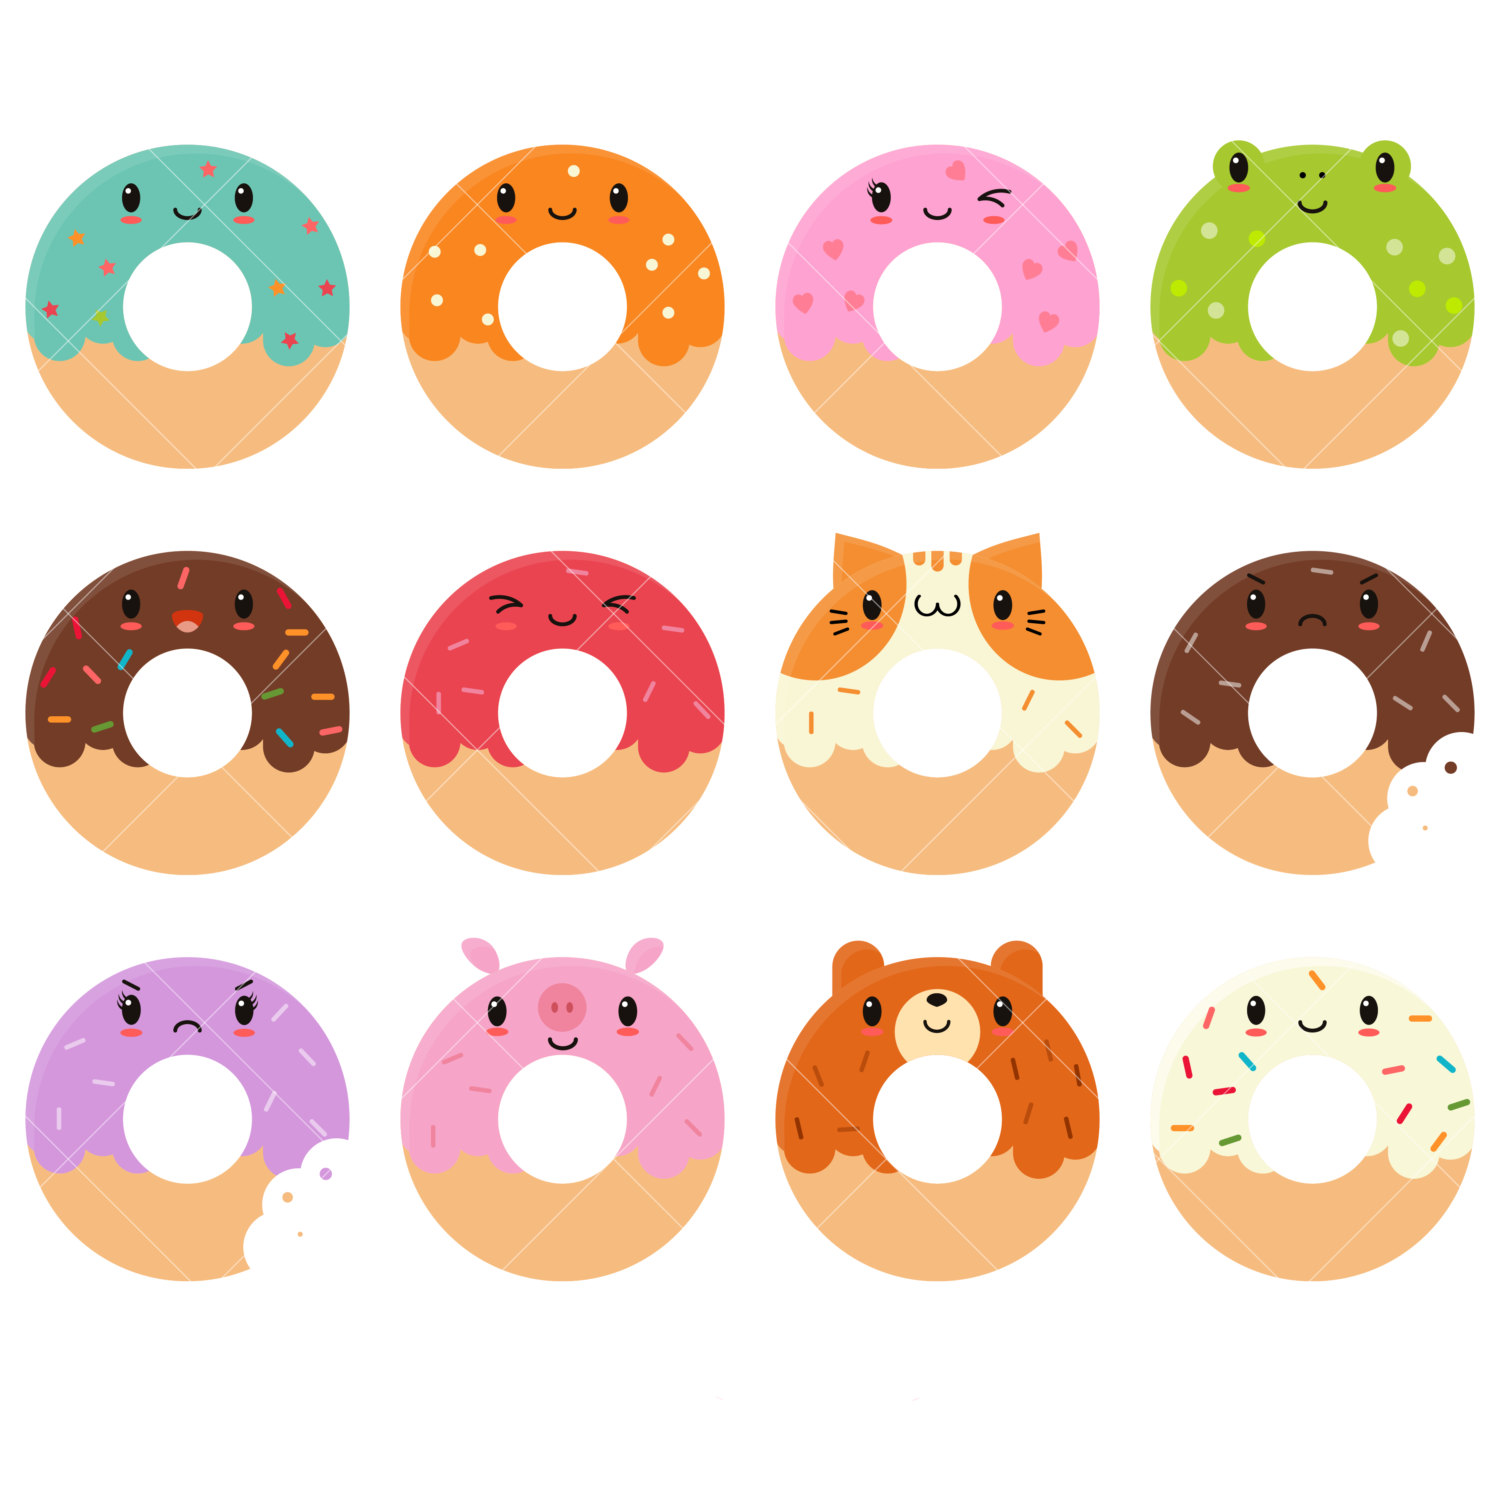 Doughnuts clipart 20 free Cliparts | Download images on ...